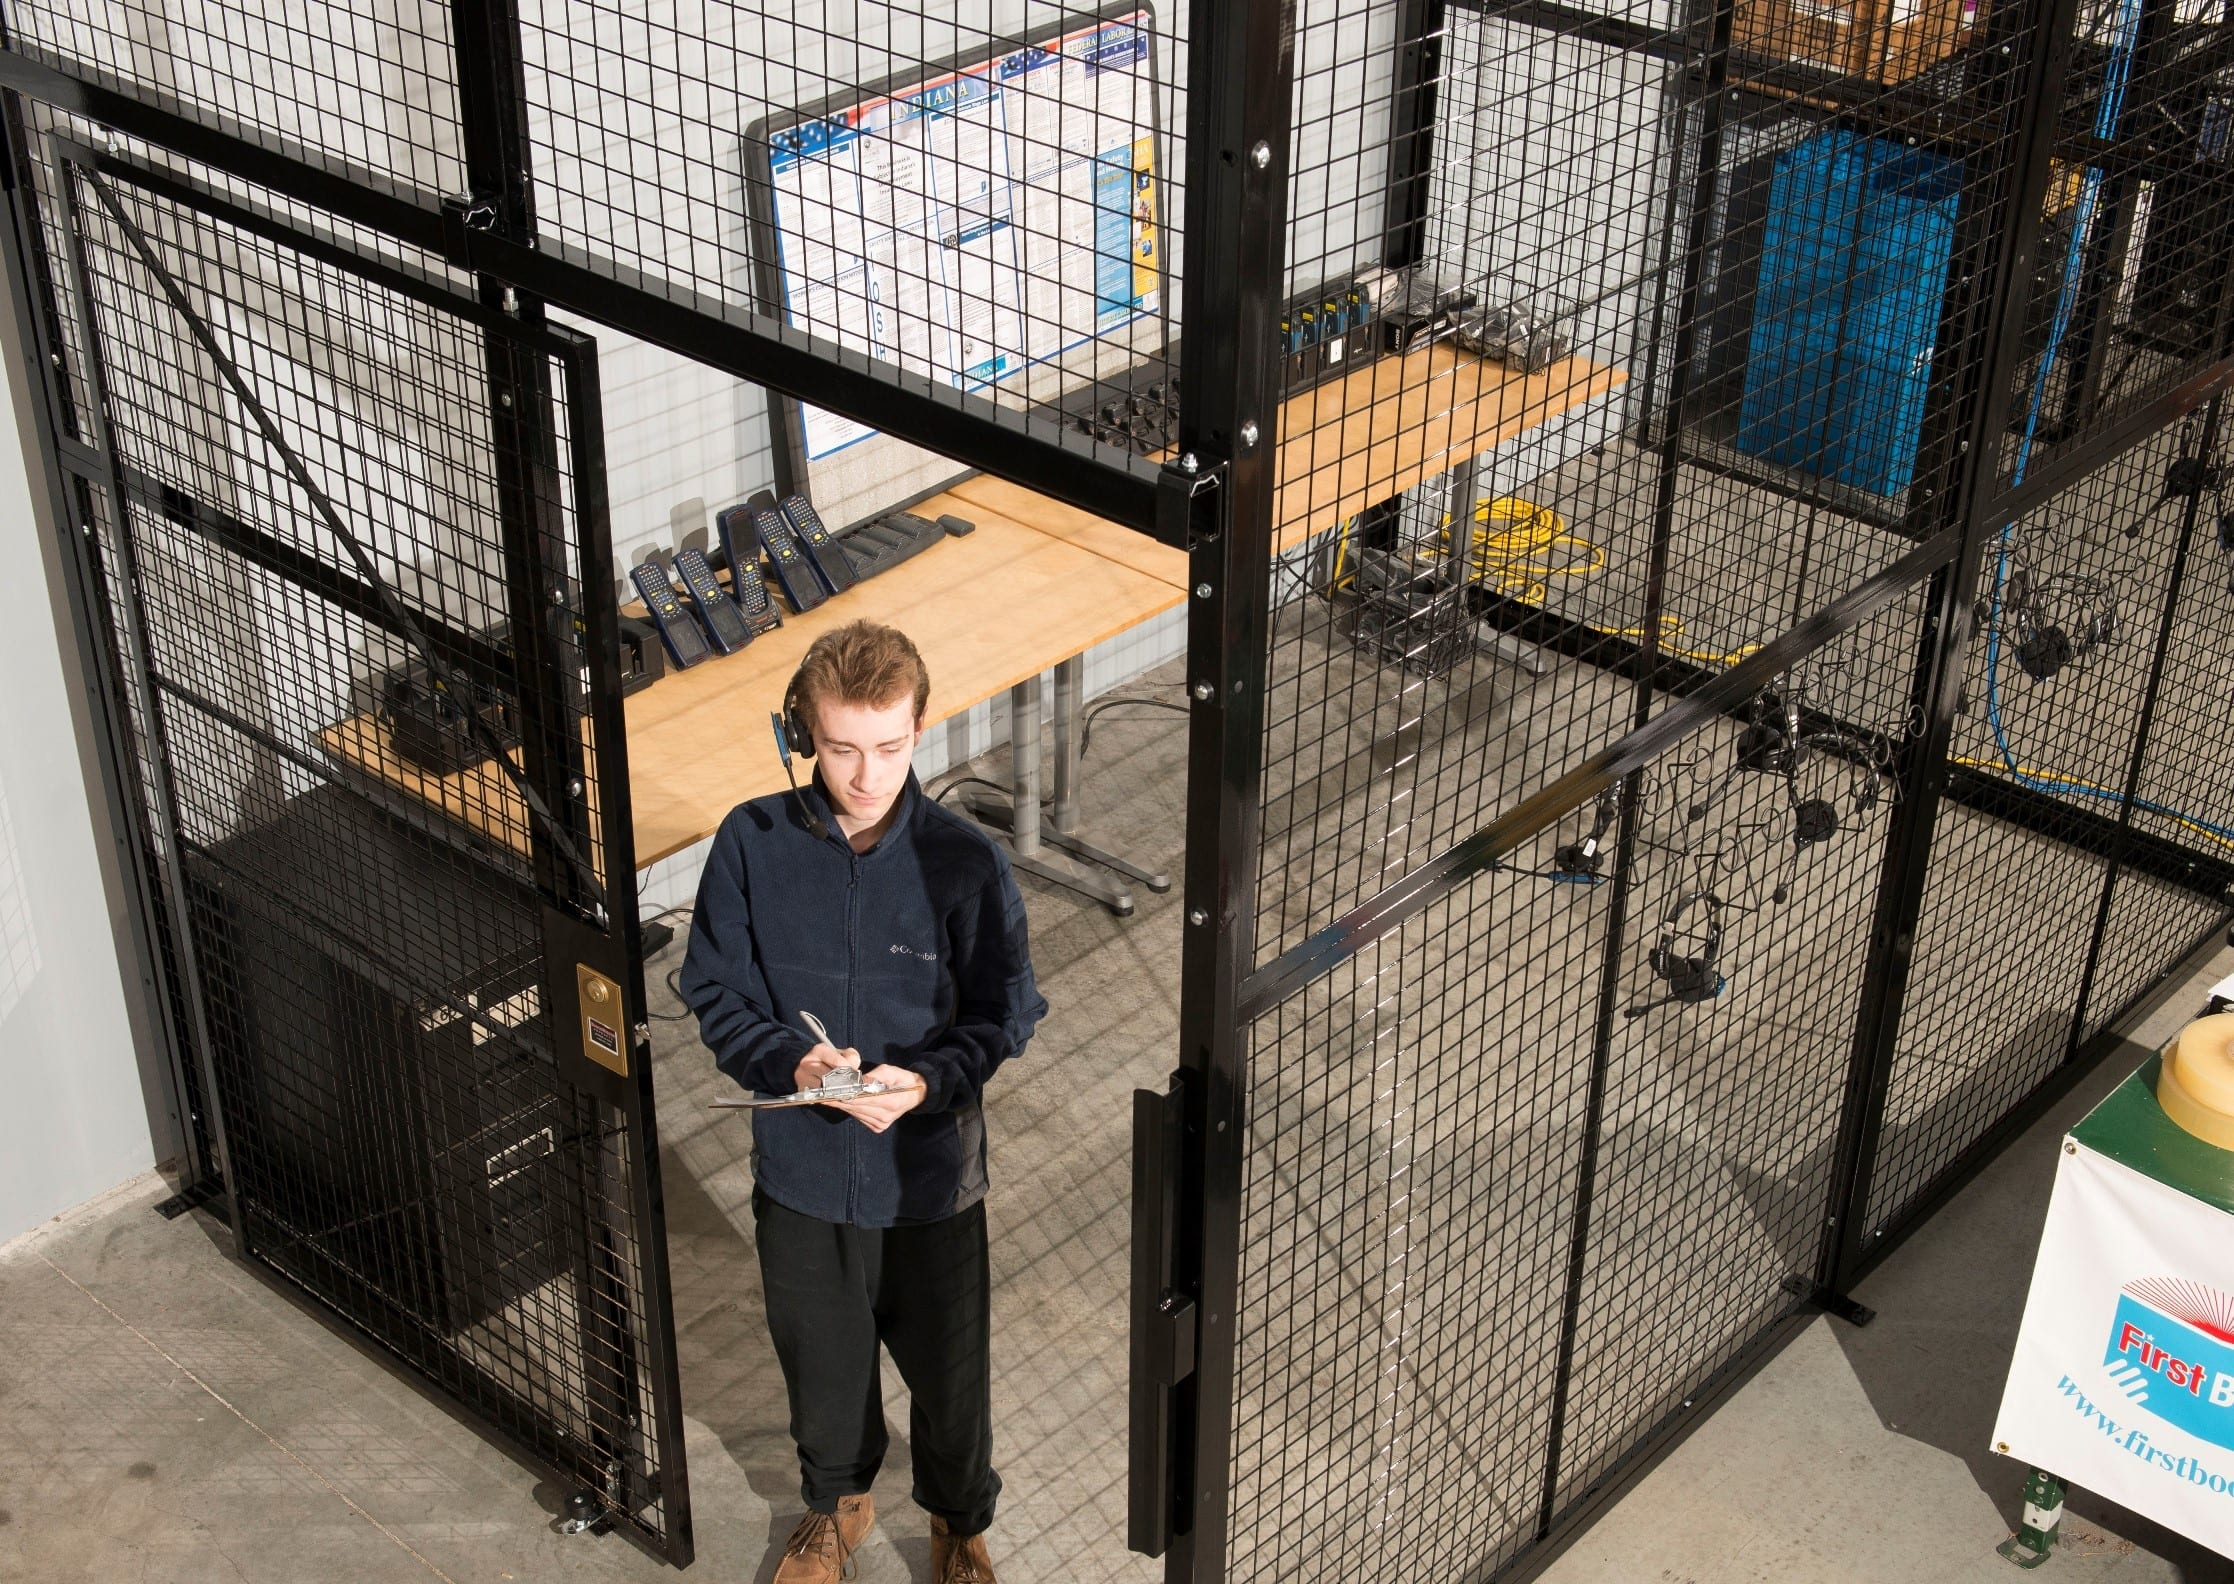 Tool-Cage-to-secure-valuable-property-or-merchandise